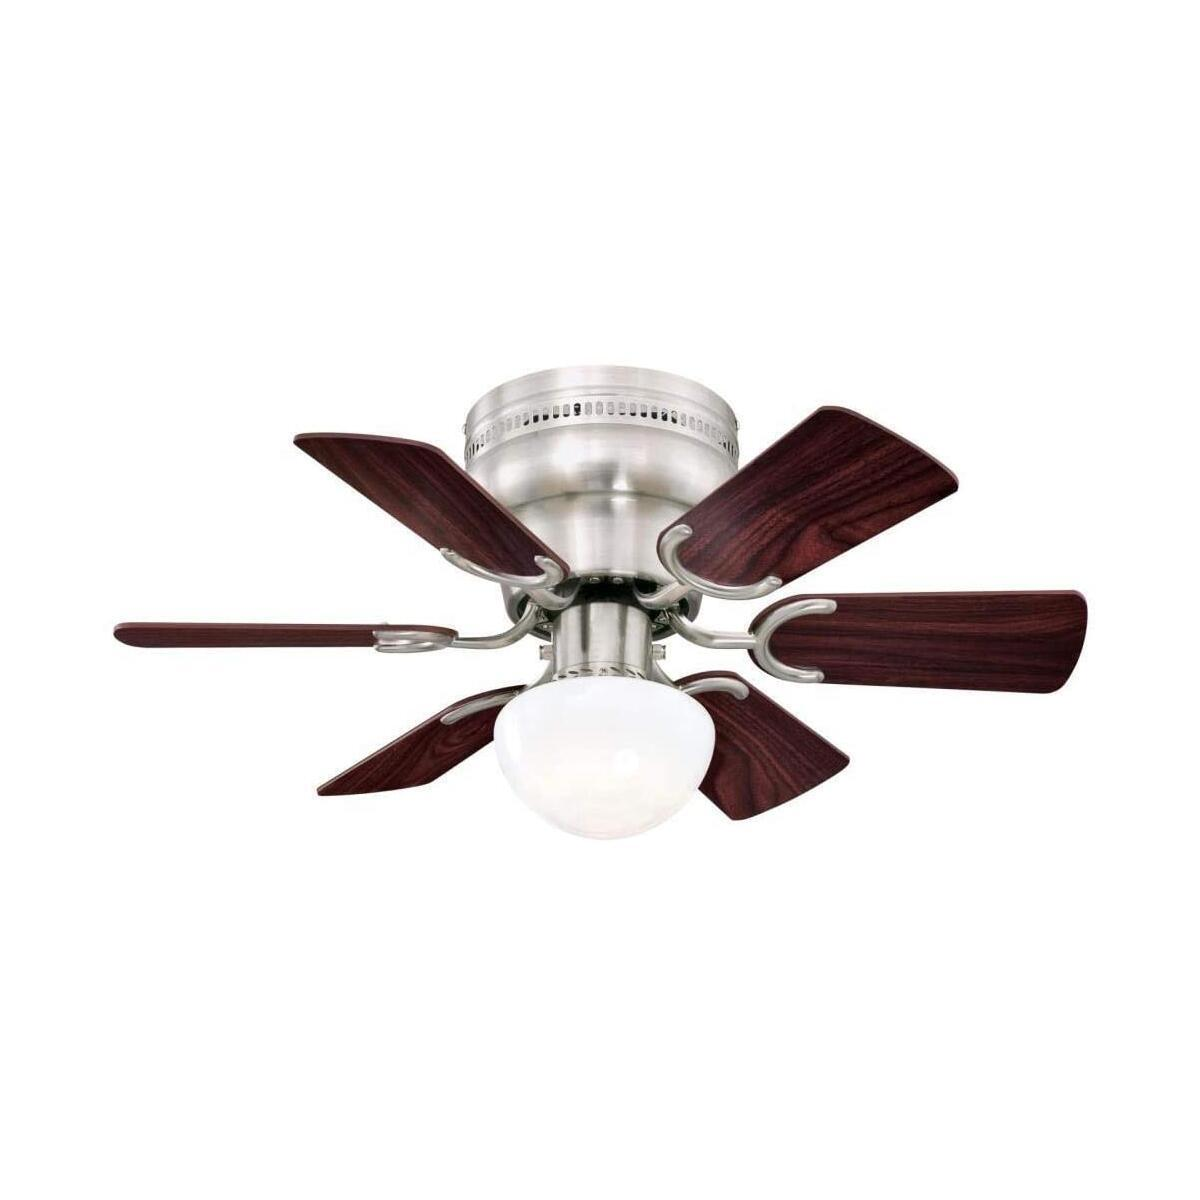 30-Inch Indoor Ceiling Fan in Brushed Nickel Finish with Dimmable LED Light Fixture in Opal Mushroom Glass with Reversible Rosewood/Light Maple Blades